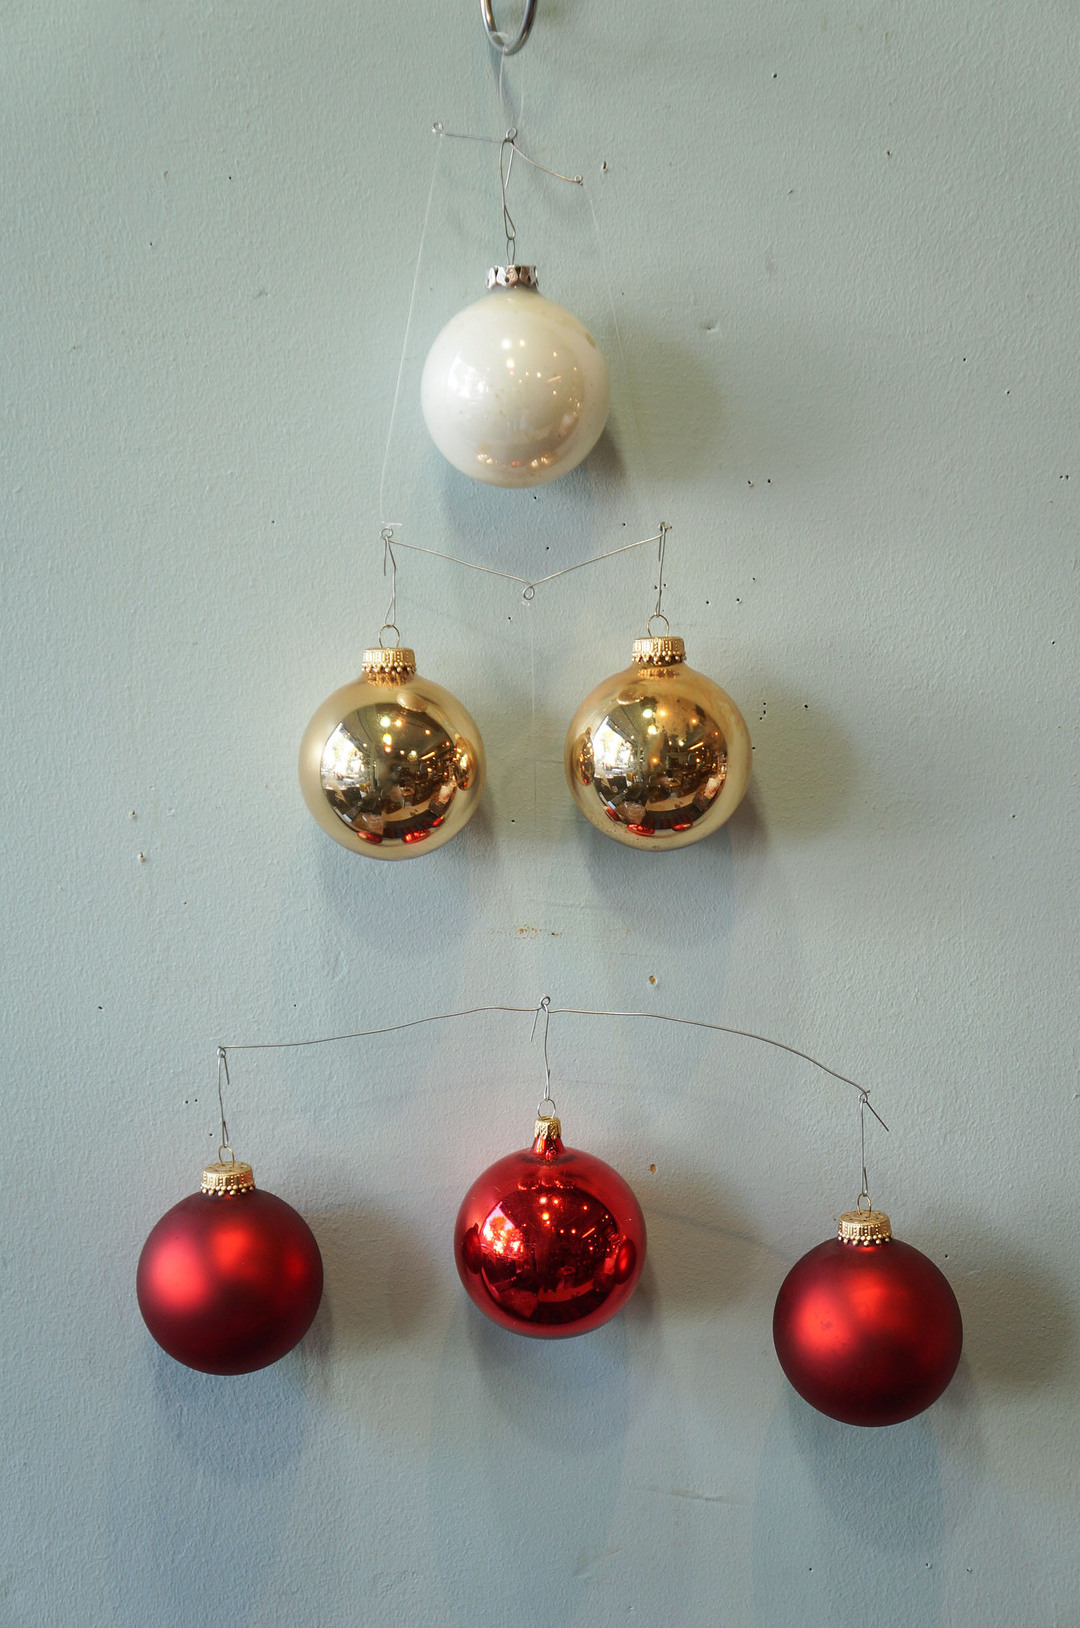 Vintage Blown Glass Christmas Ball Ornament/ヴィンテージ クリスマス オーナメント 吹きガラス ボール レトロ 6個セット 3